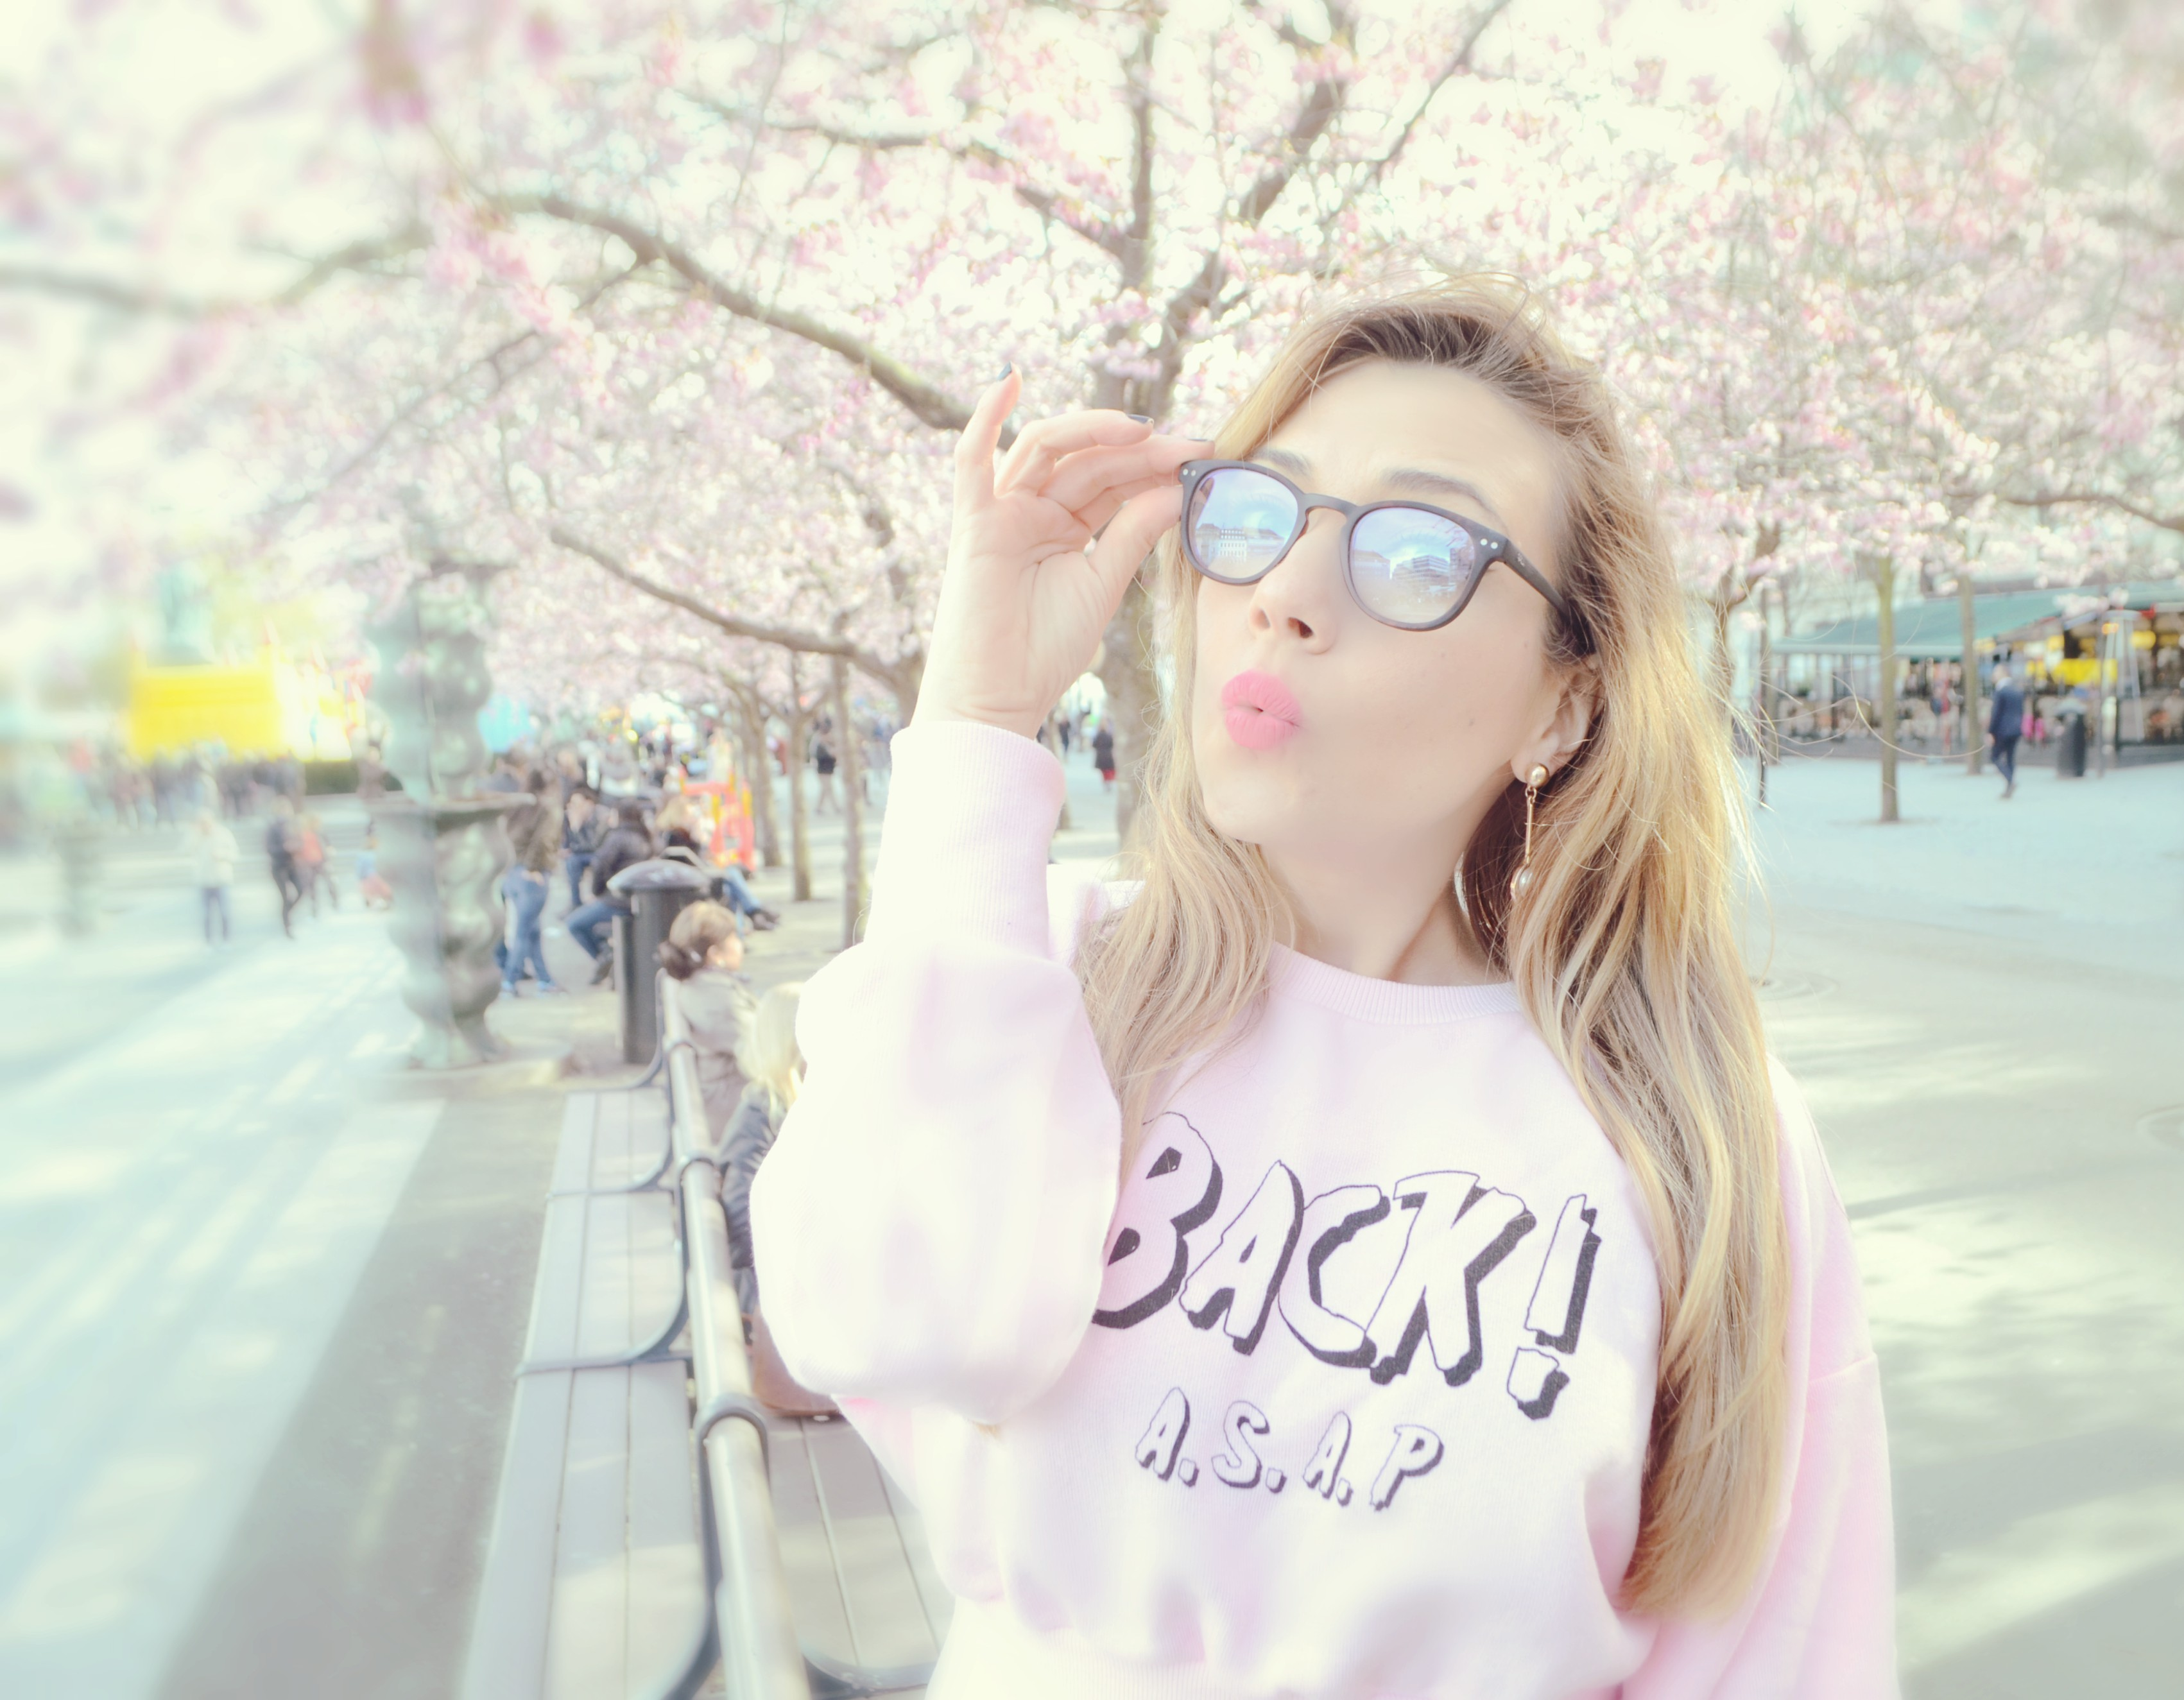 Fashionista-blog-de-moda-ChicAdicta-sudadera-rosa-zara-Chic-Adicta-influencer-travel-fashion-the-90s-look-PiensaenChic-Piensa-en-Chic